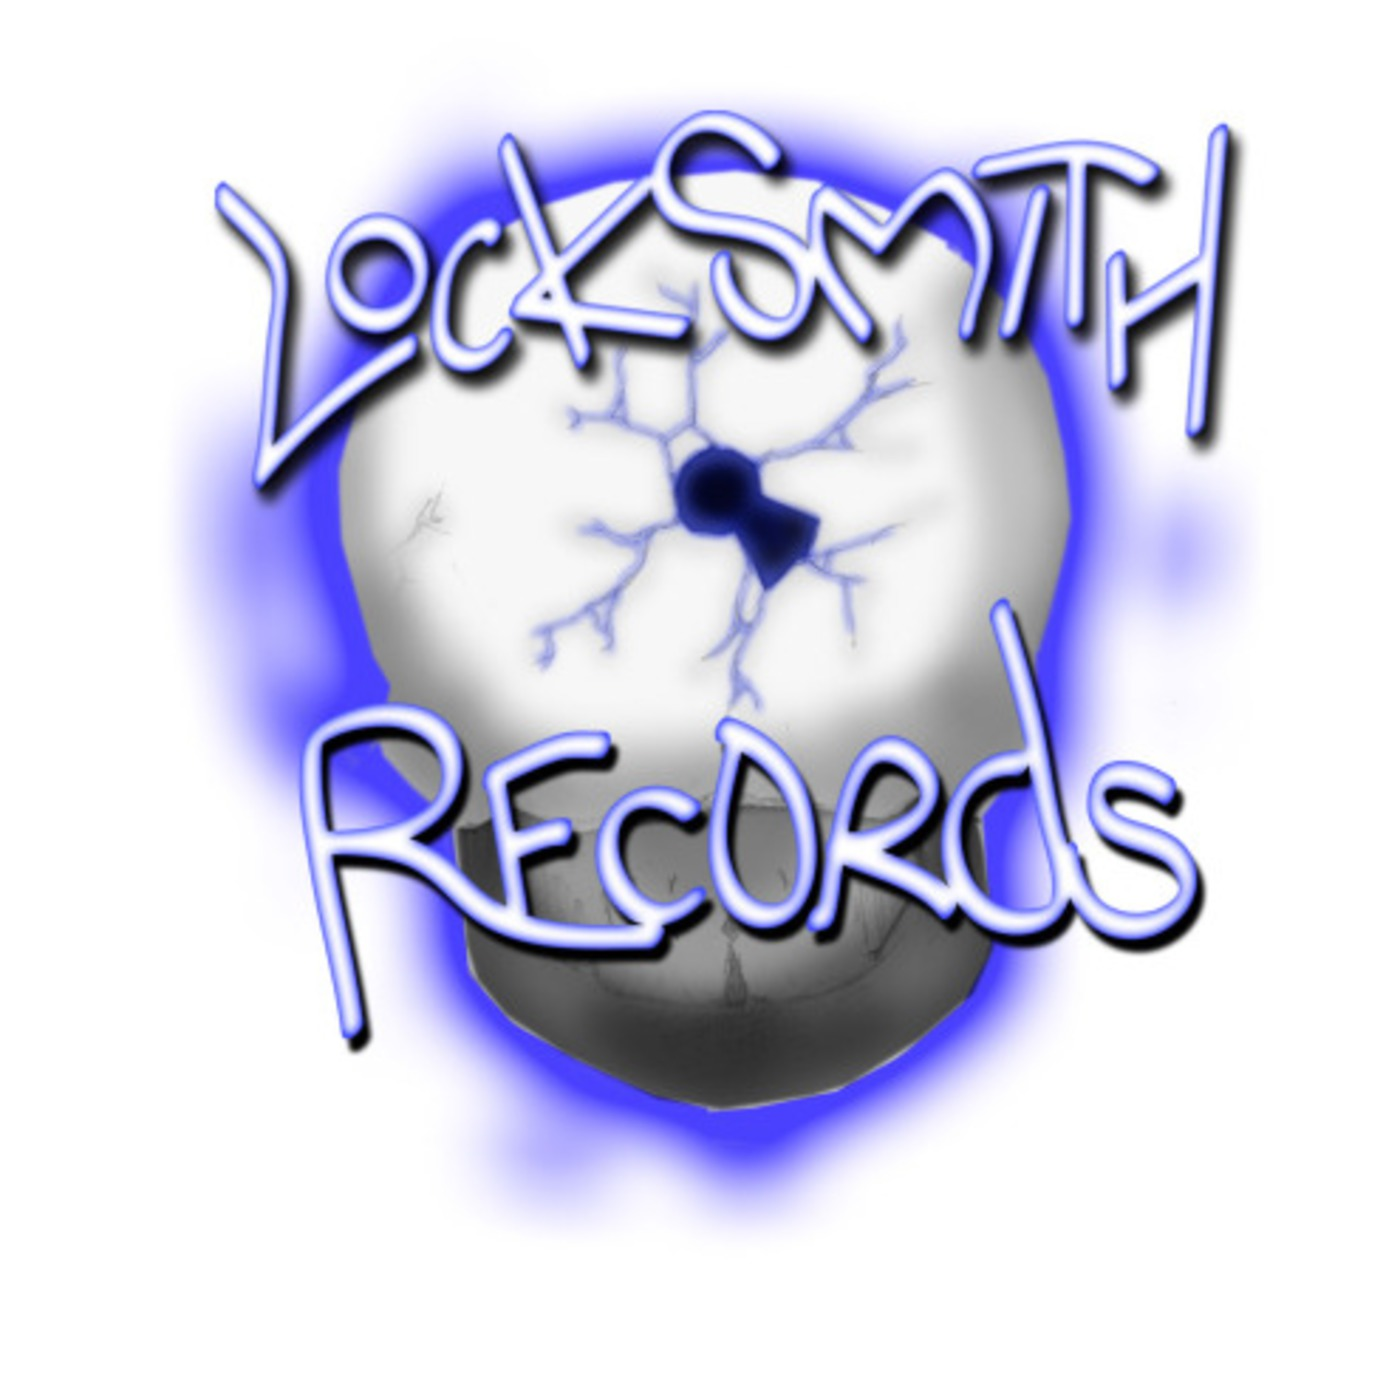 Locksmith Records' Podcast